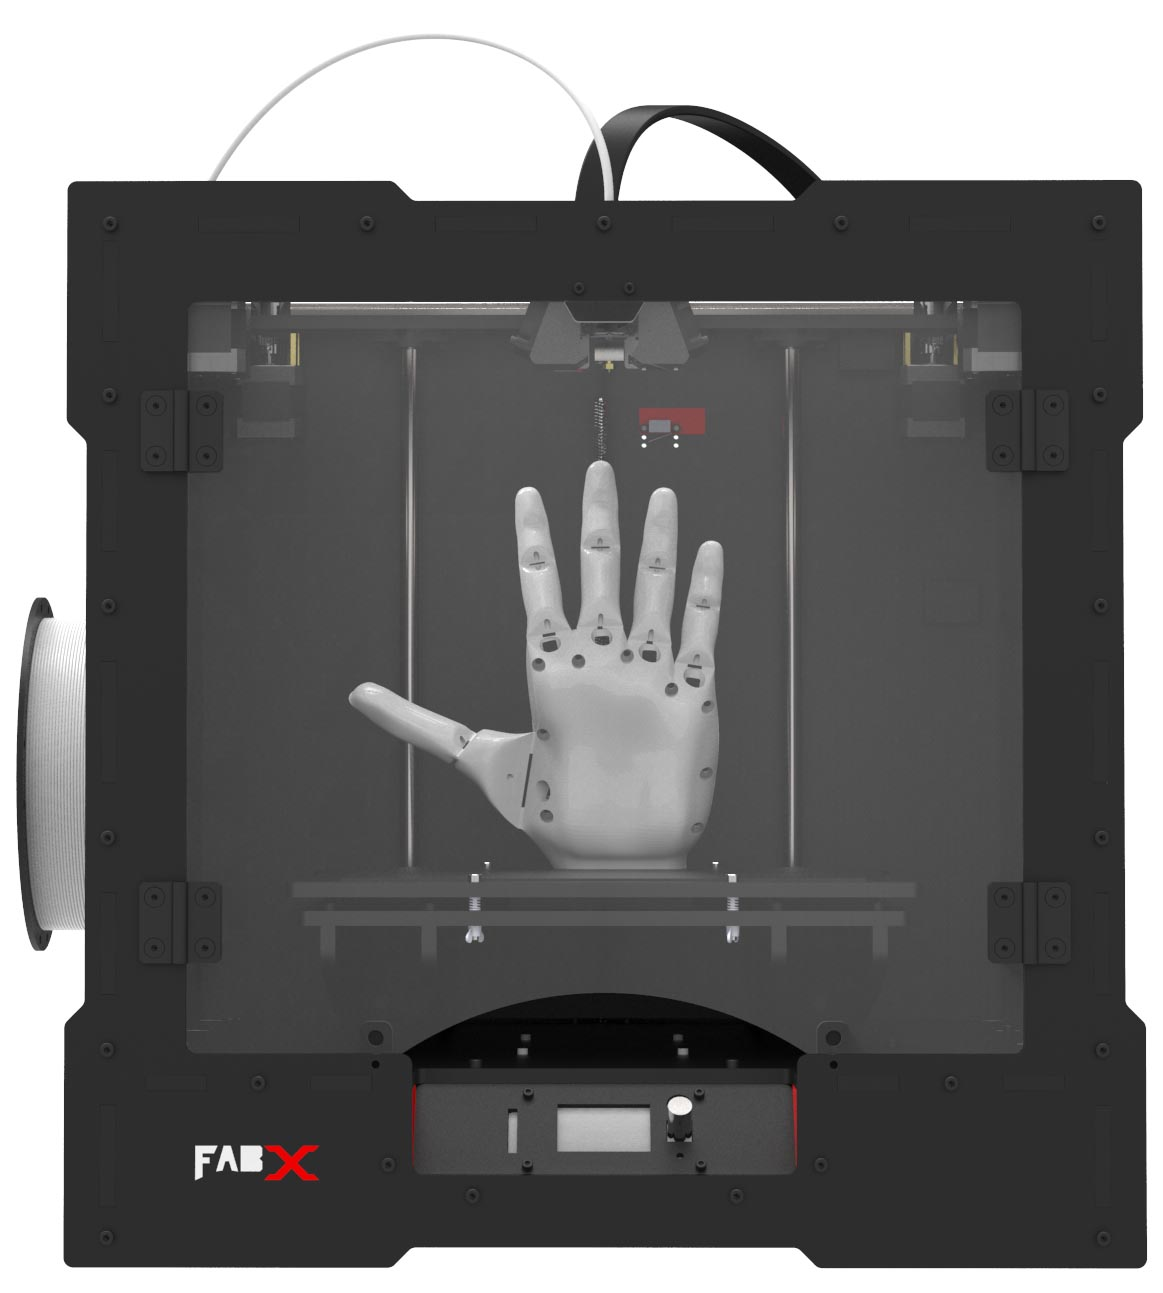 FabXL 3D Printer Robotics